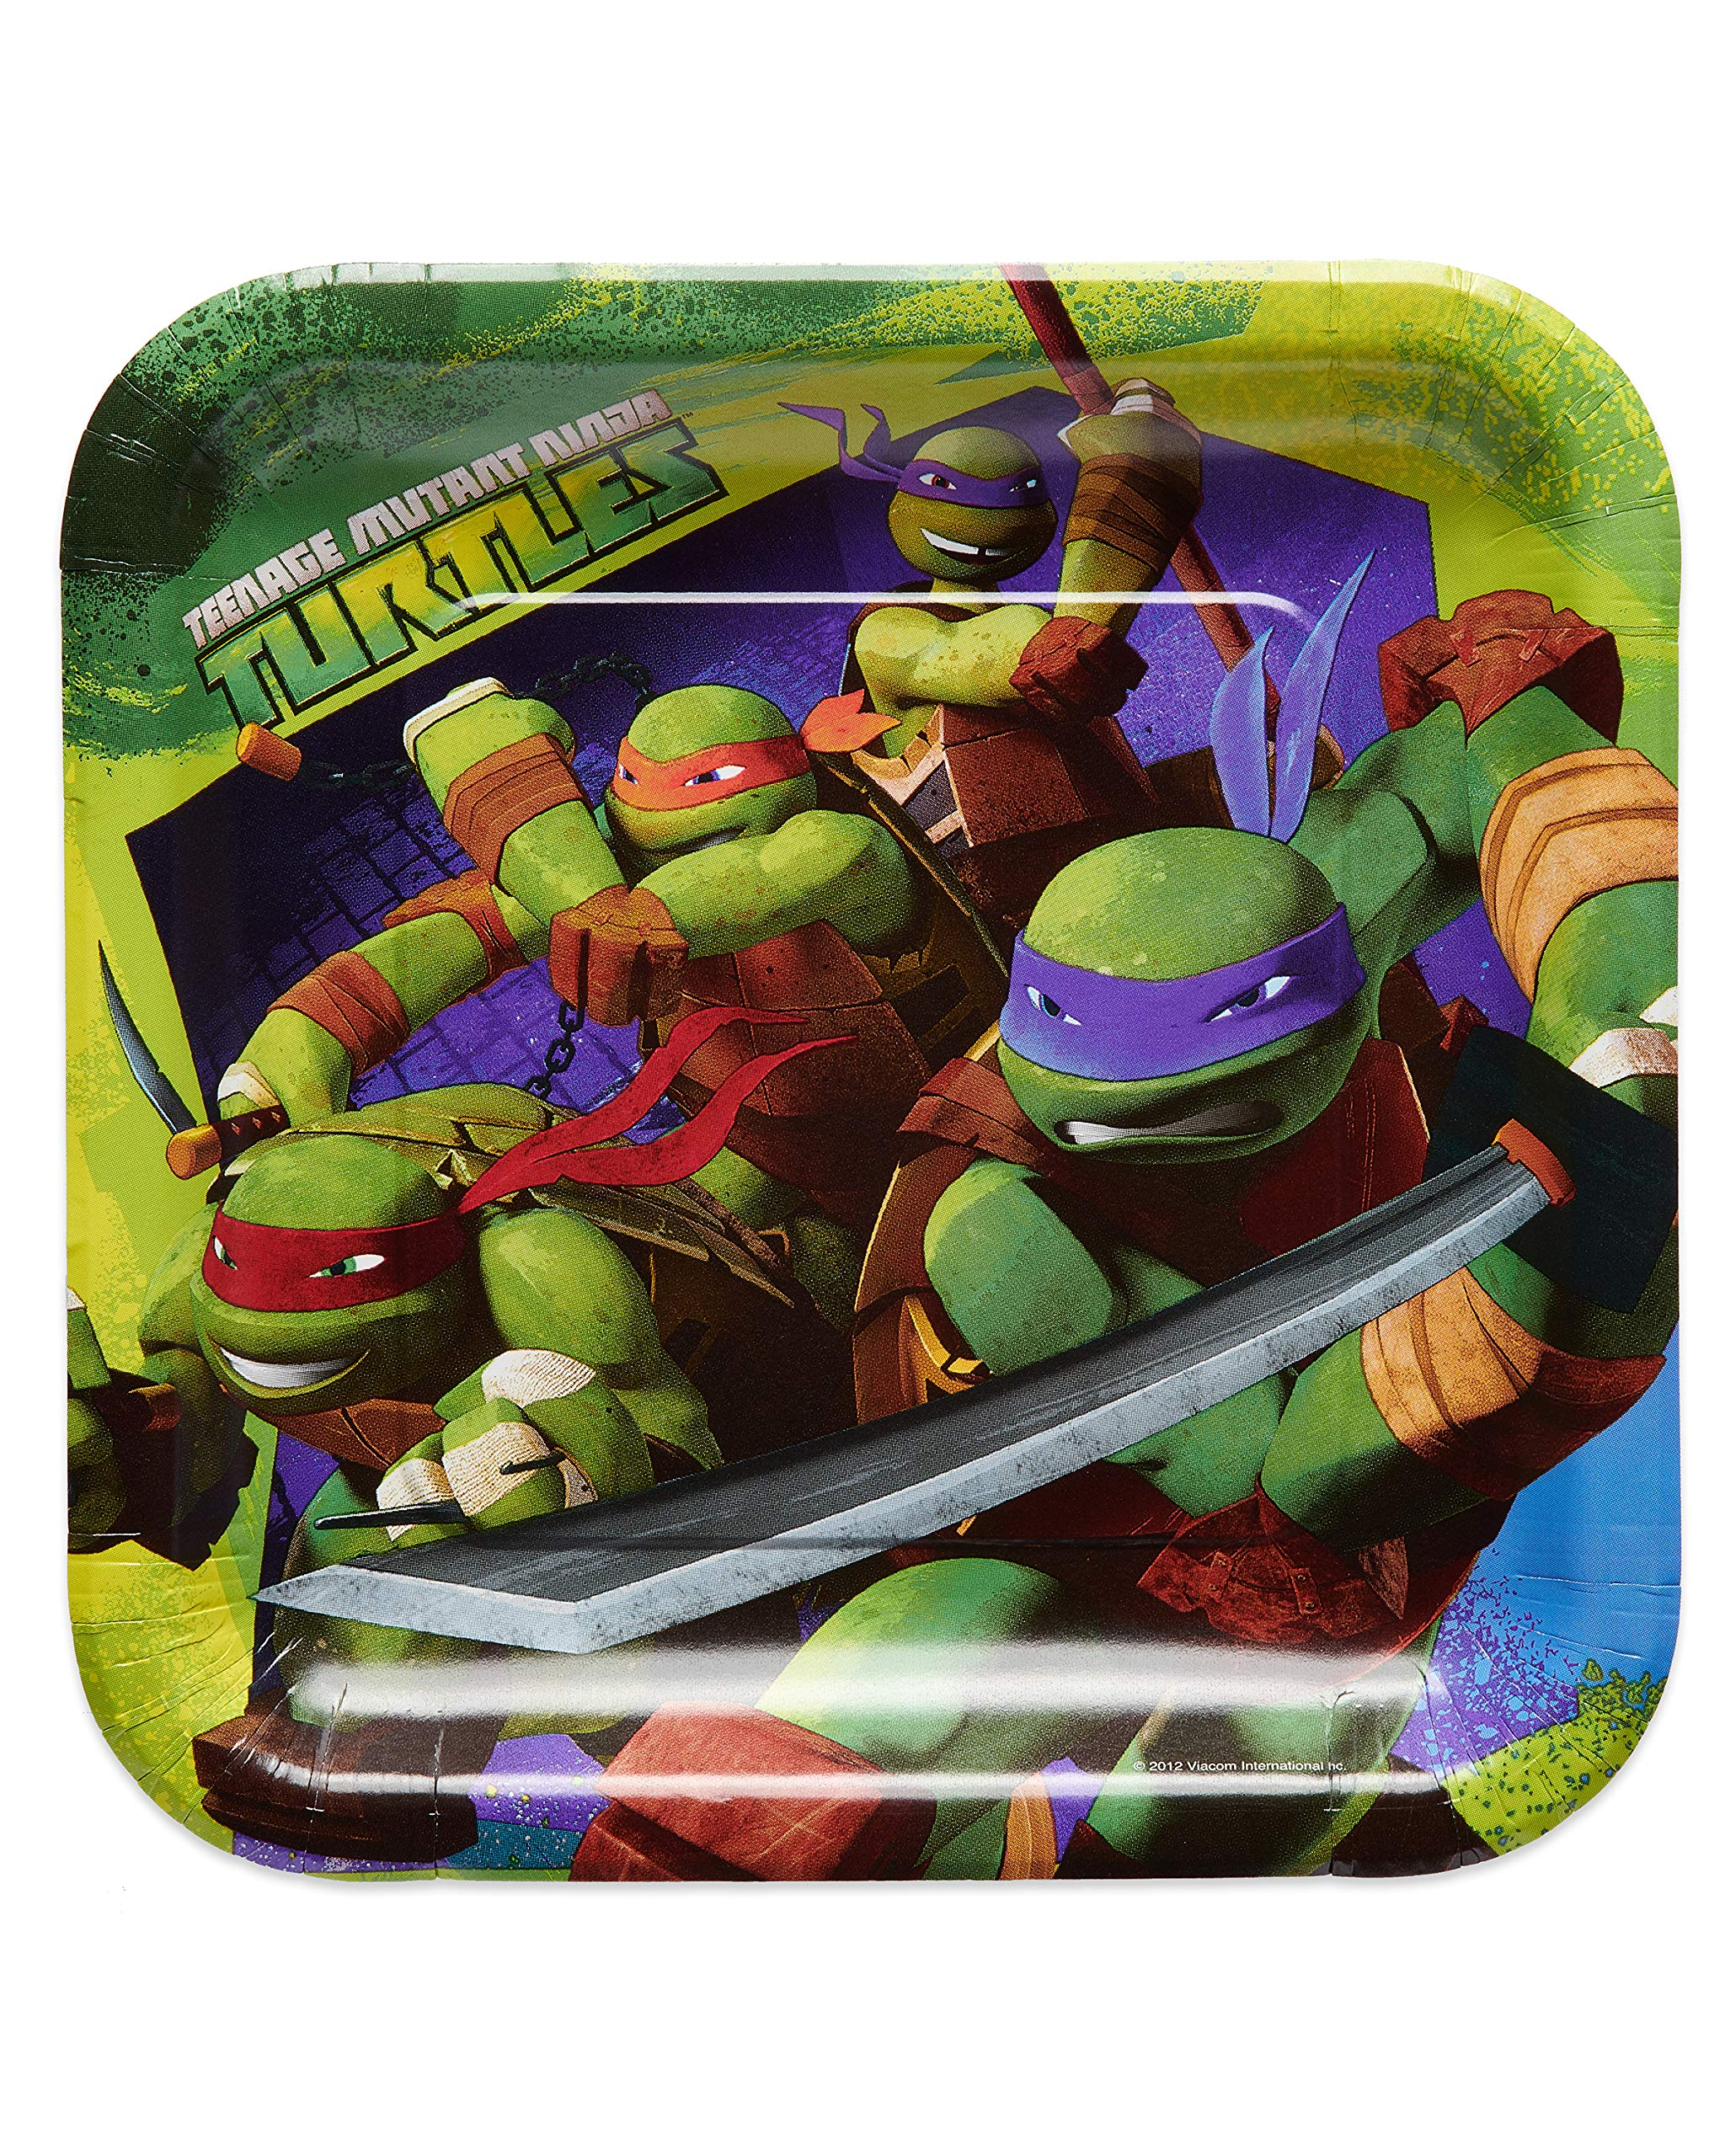 American Greetings Teenage Mutant Ninja Turtles (TMNT) Party Supplies, Paper Dinner Plates (40-Count) by American Greetings/ Nickelodeon